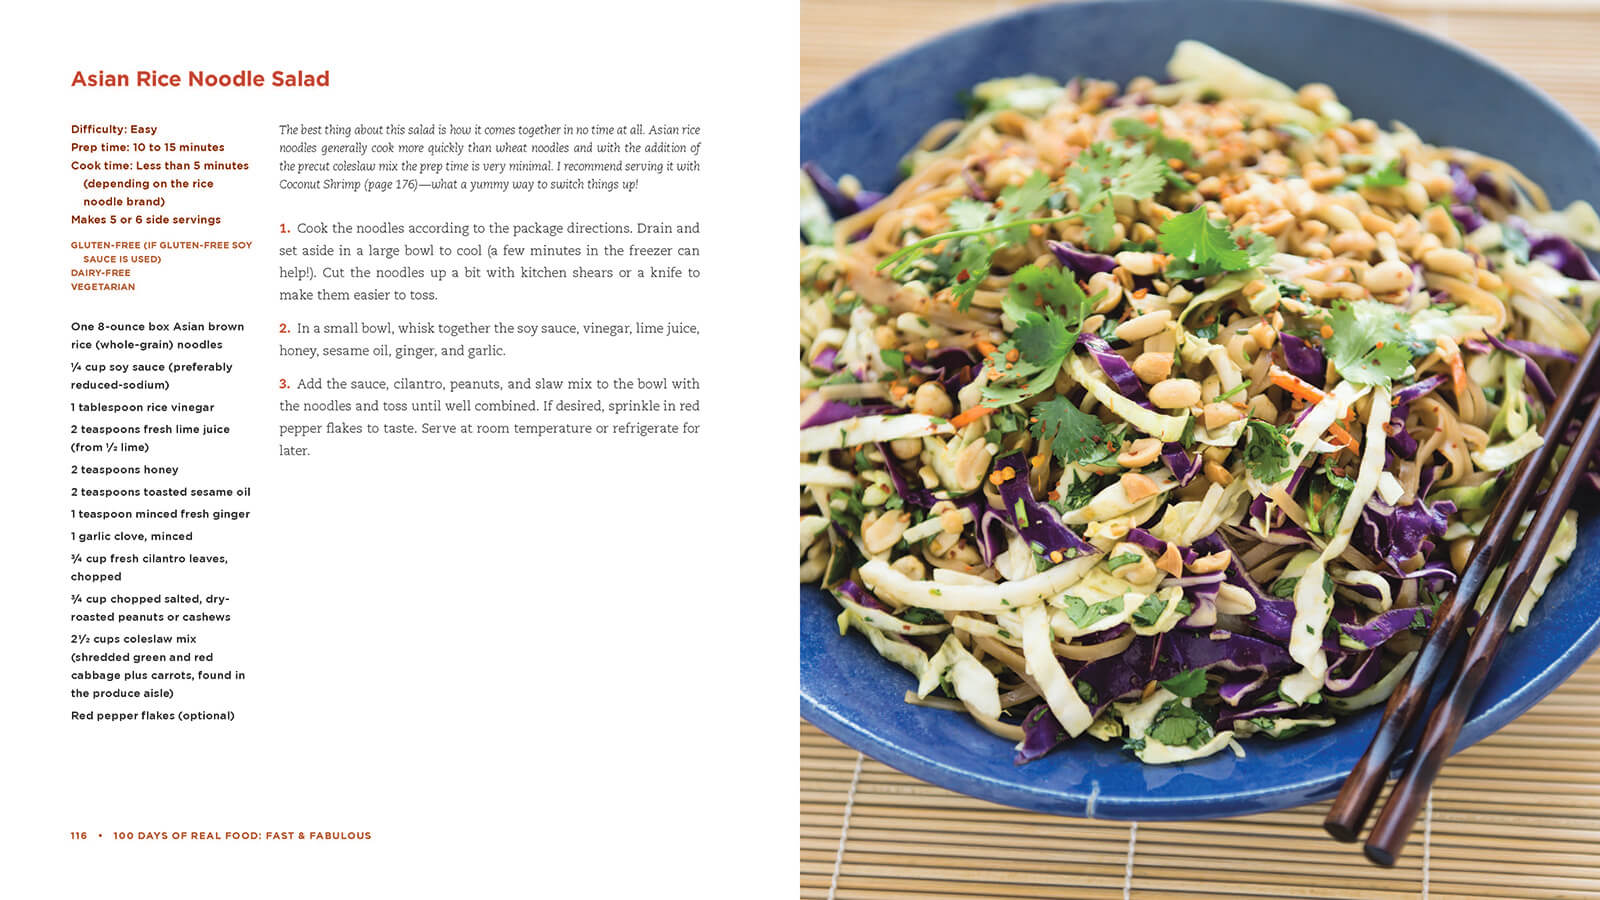 100 Days of Real Food new cookbook recipe: Asian Rice Noodle Salad